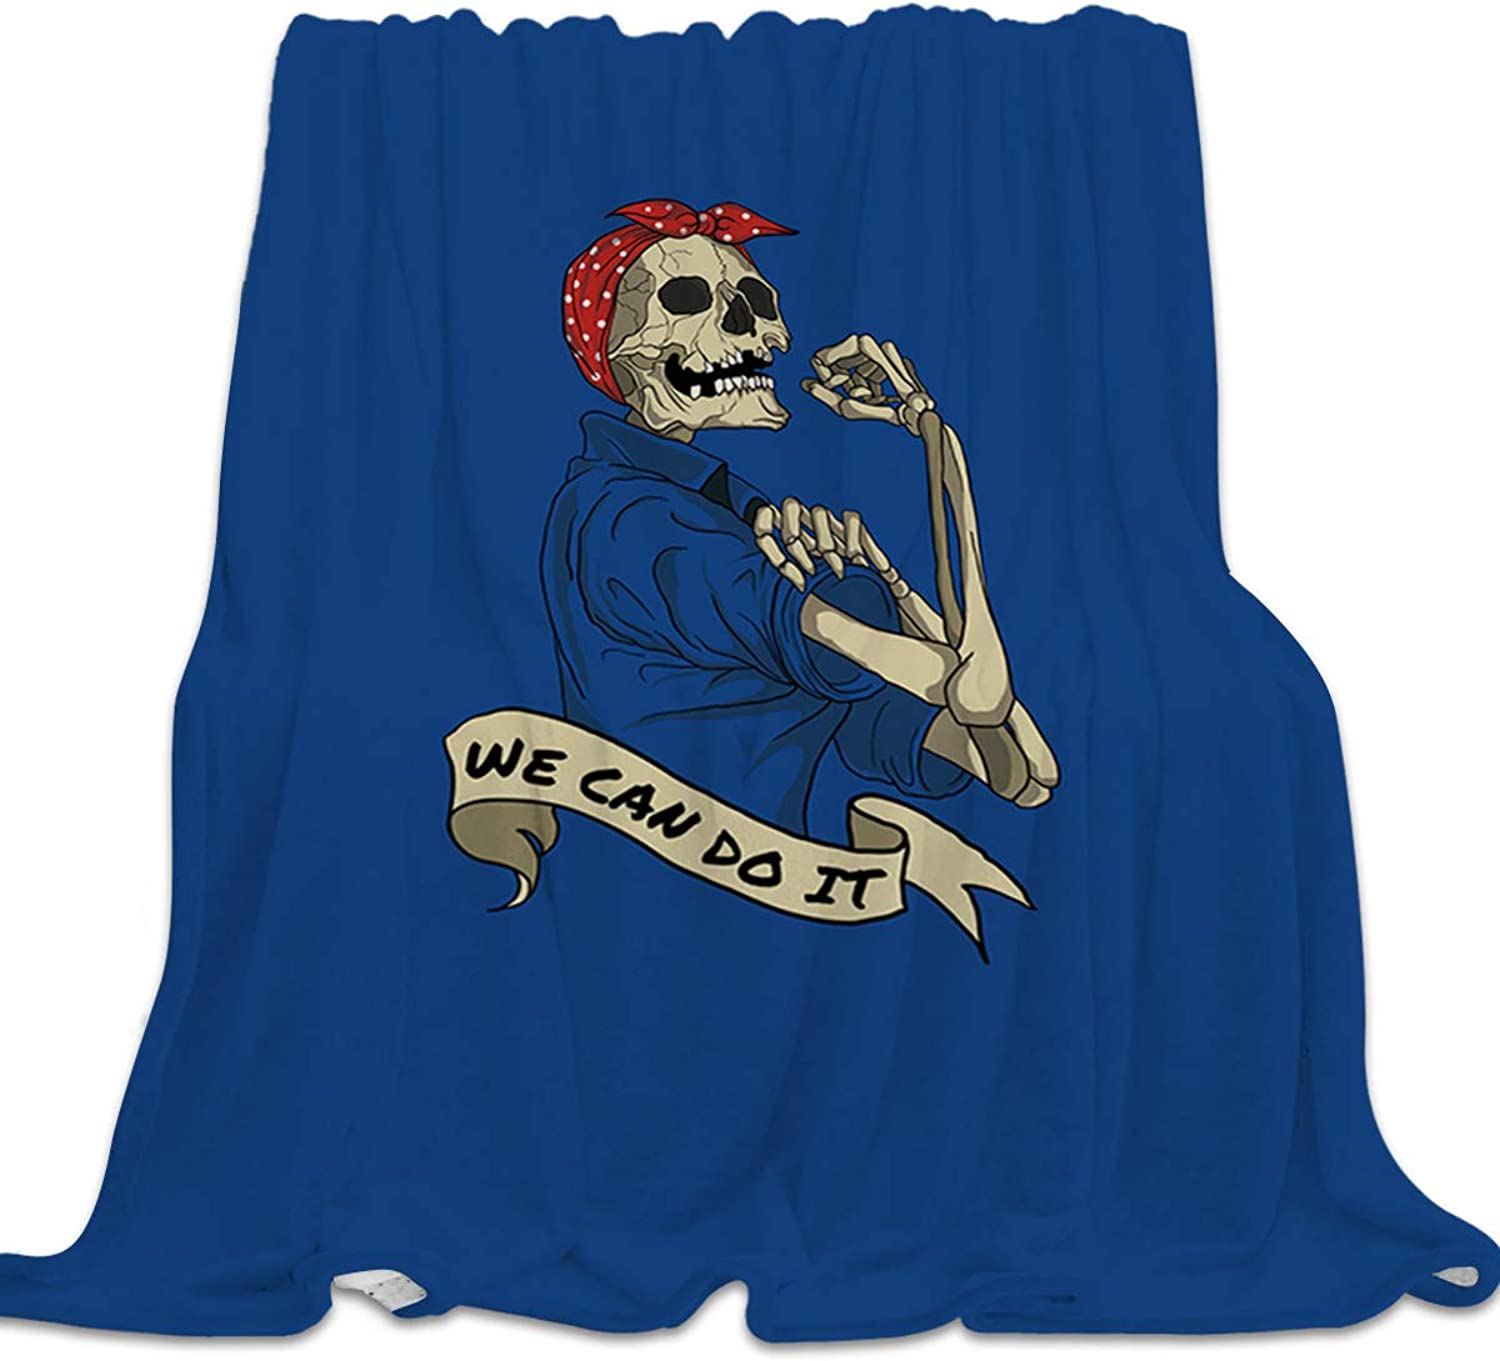 YEHO Art Gallery Flannel Fleece Bed Blanket Super Soft Cozy Throw-Blankets for Kids Girls Boys,Lightweight Blankets for Bed Sofa Couch Chair Day Nap,Funny Skull Head Girl bluee Pattern,39x49inch